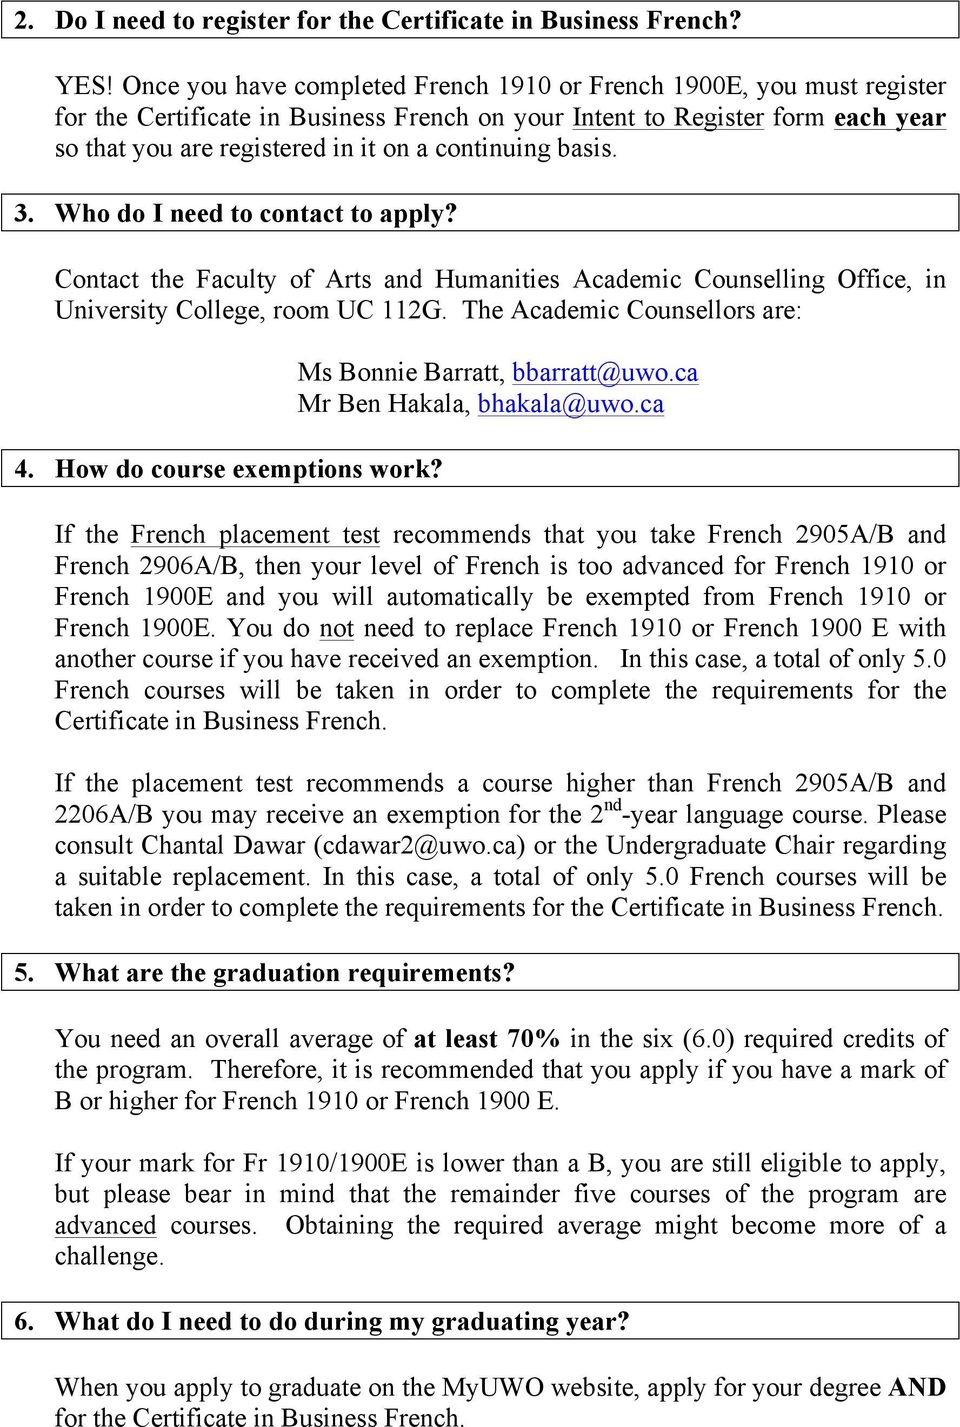 continuing basis. 3. Who do I need to contact to apply? Contact the Faculty of Arts and Humanities Academic Counselling Office, in University College, room UC 112G. The Academic Counsellors are: 4.